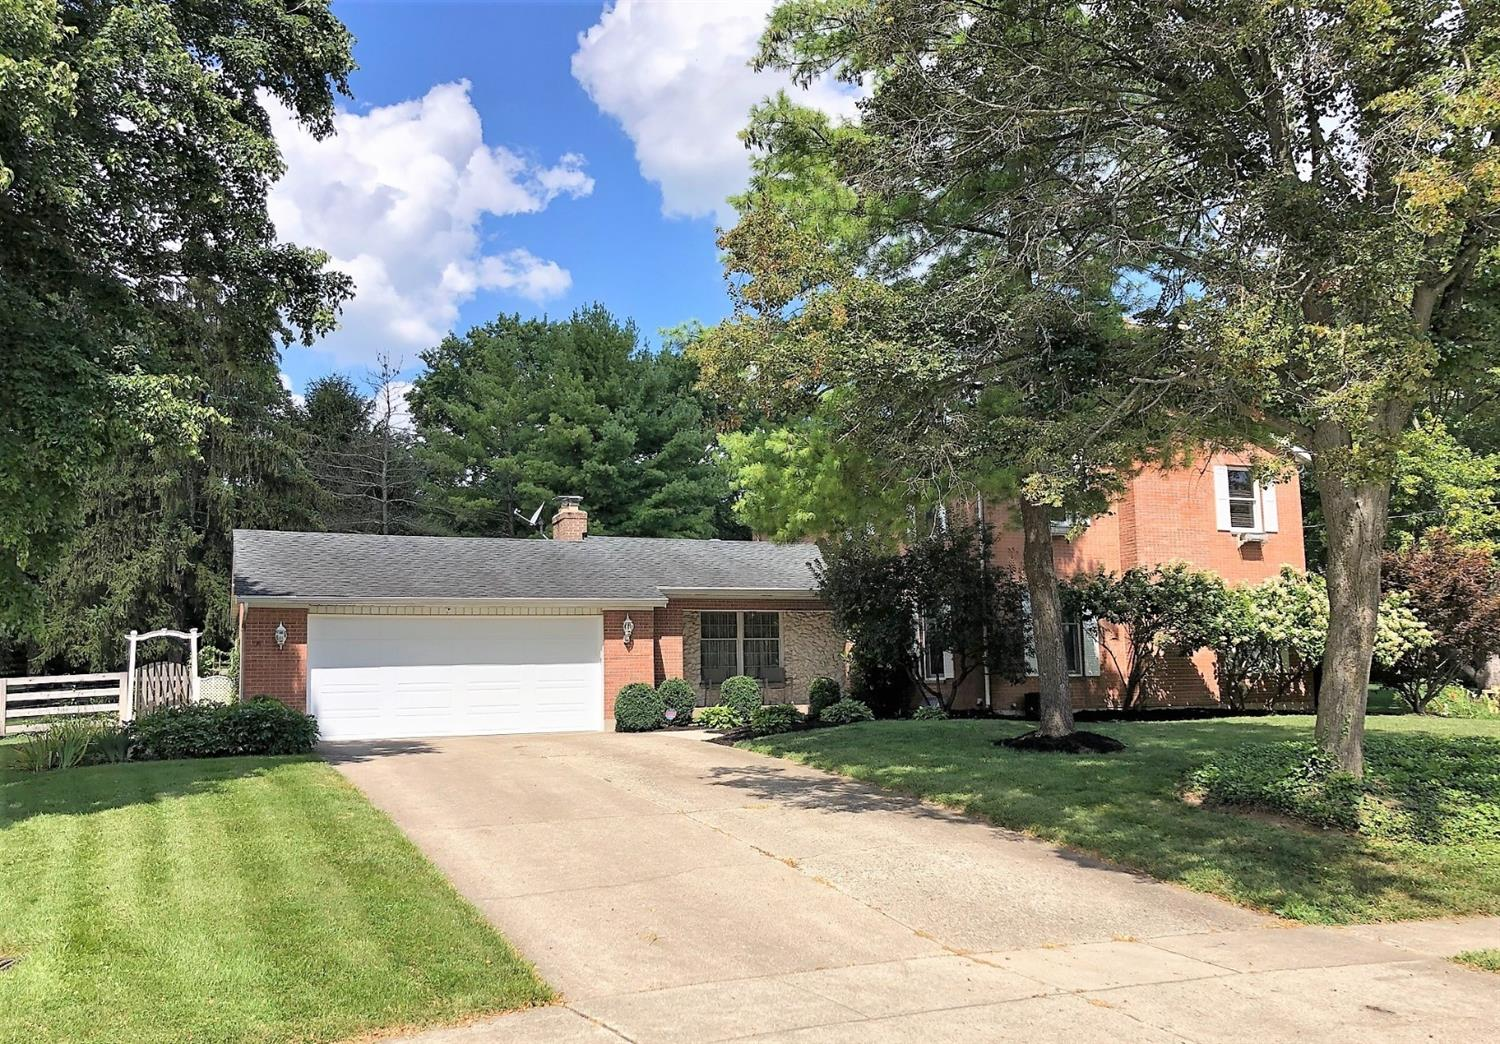 Gorgeous over 1/2 acre cul-de-sac lot in Rolling Hills! You'll find many custom features like oak pegged hdwd flrs, built-in bookcases, Anderson windows, 2x6 walls, and a spectacular Amish solid cherry kitchen w/granite! This 4 bdrm 4 bath home has a fantastic finished lower level with endless possibilities for entertaining, relaxing, exercising, theatre rm, kitchenette, whatever your needs are! HVAC new in 2013, Roof 2010, Windows 2008.  Backyard is huge with fence, deck, pergola & paver patio!